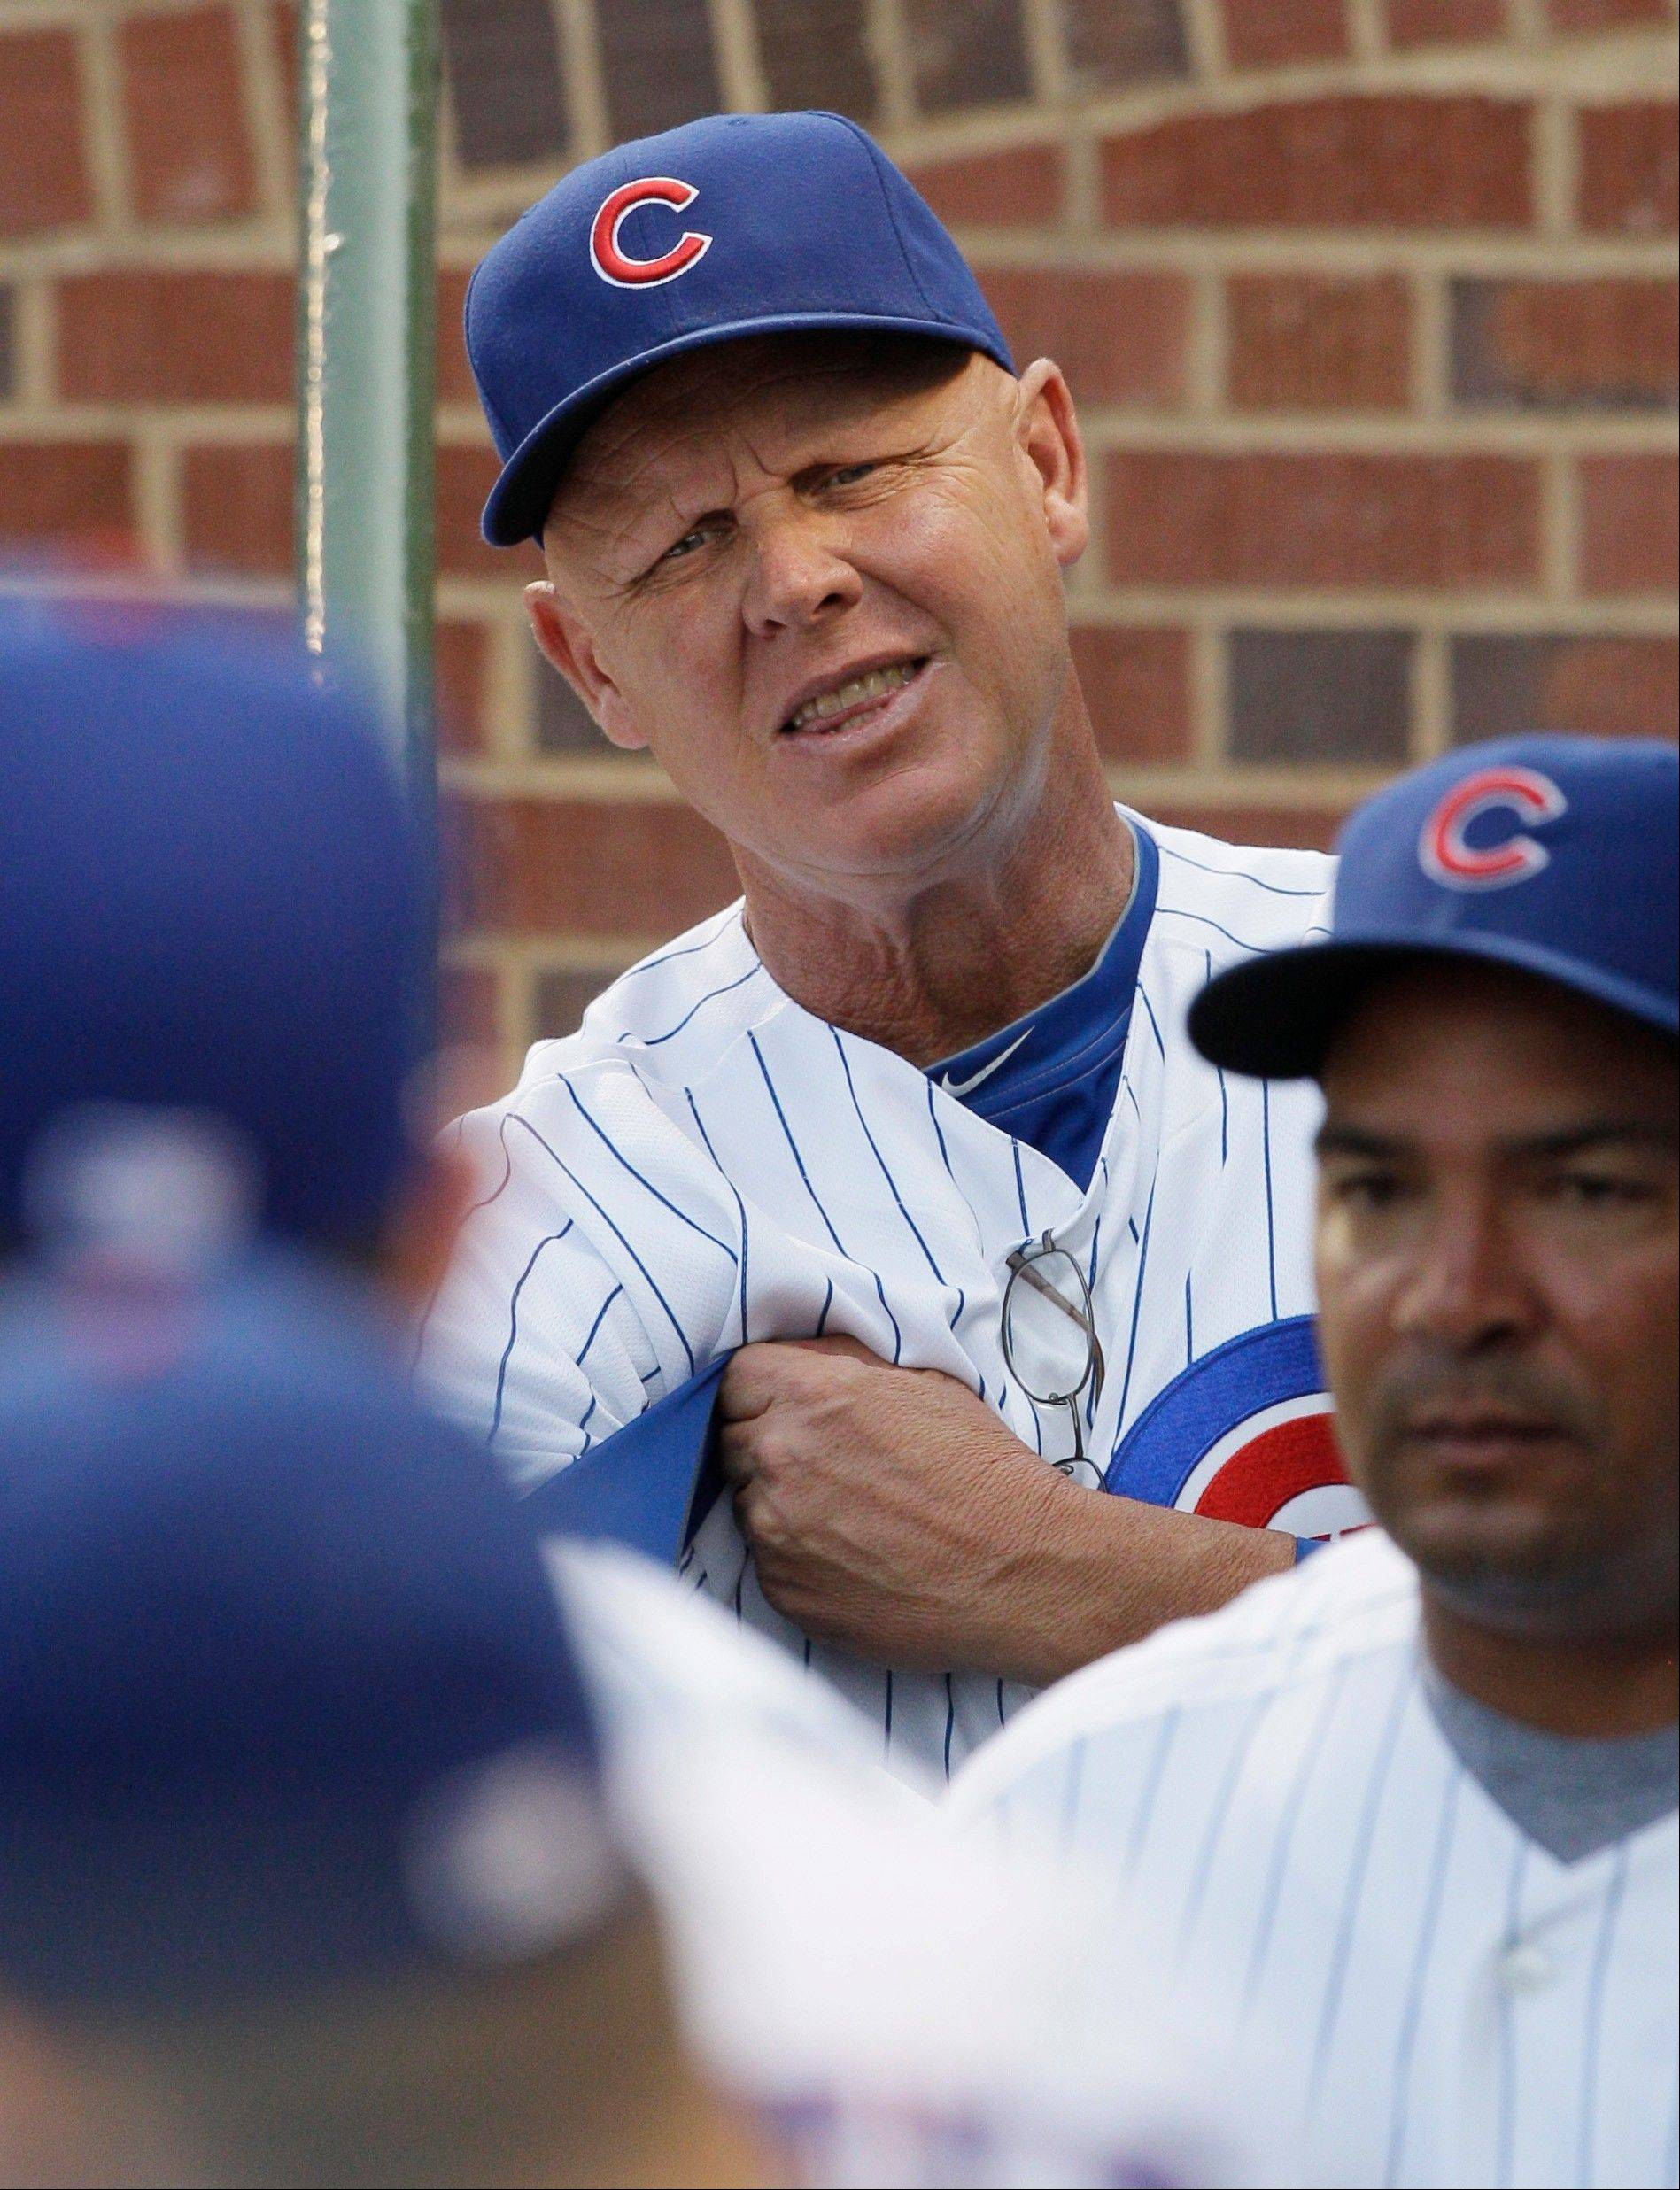 Chicago Cubs manager Mike Quade looks to his team in the dugout before a baseball game against the Florida Marlins, Thursday, July 14, 2011, in Chicago.